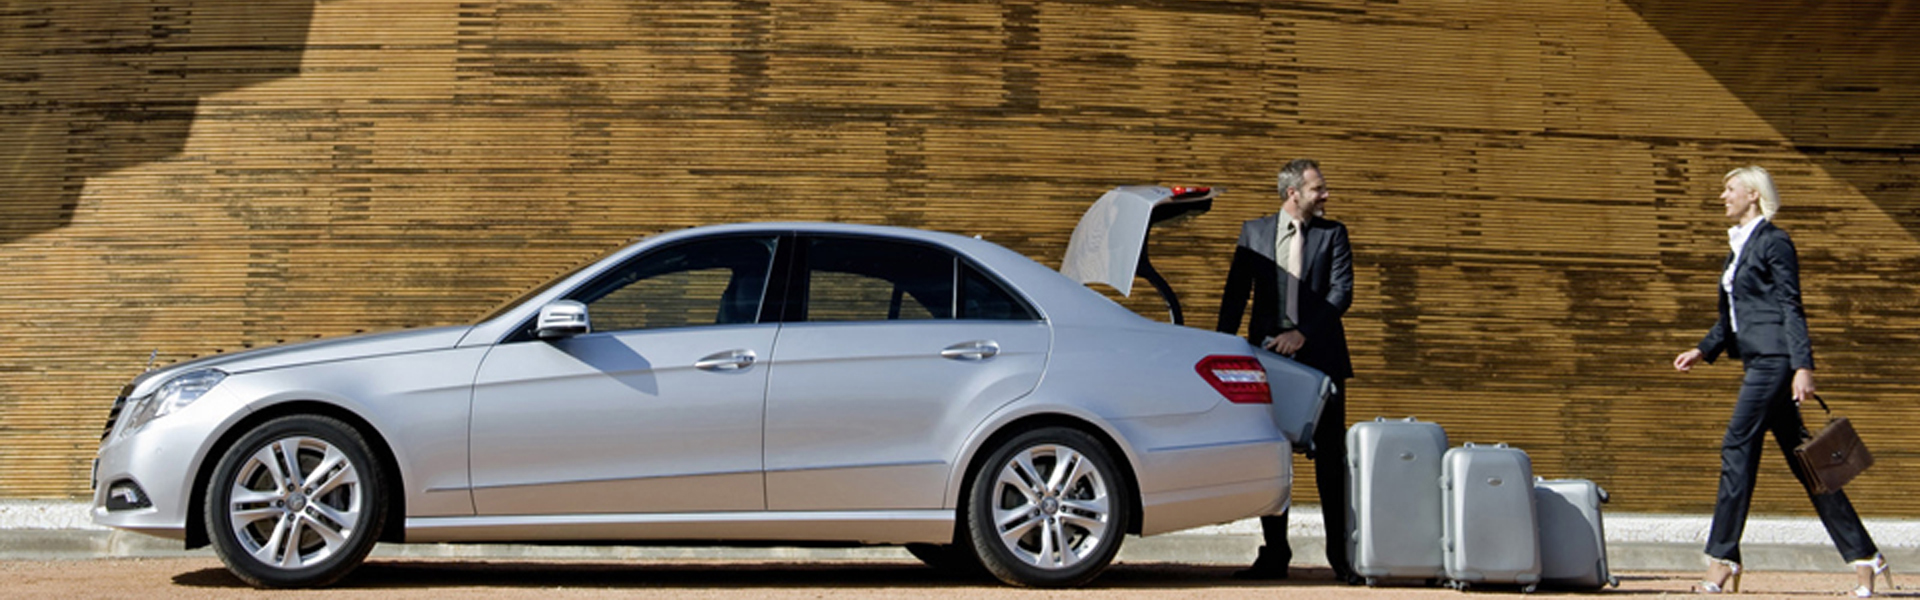 Chauffeur Airport Transfers